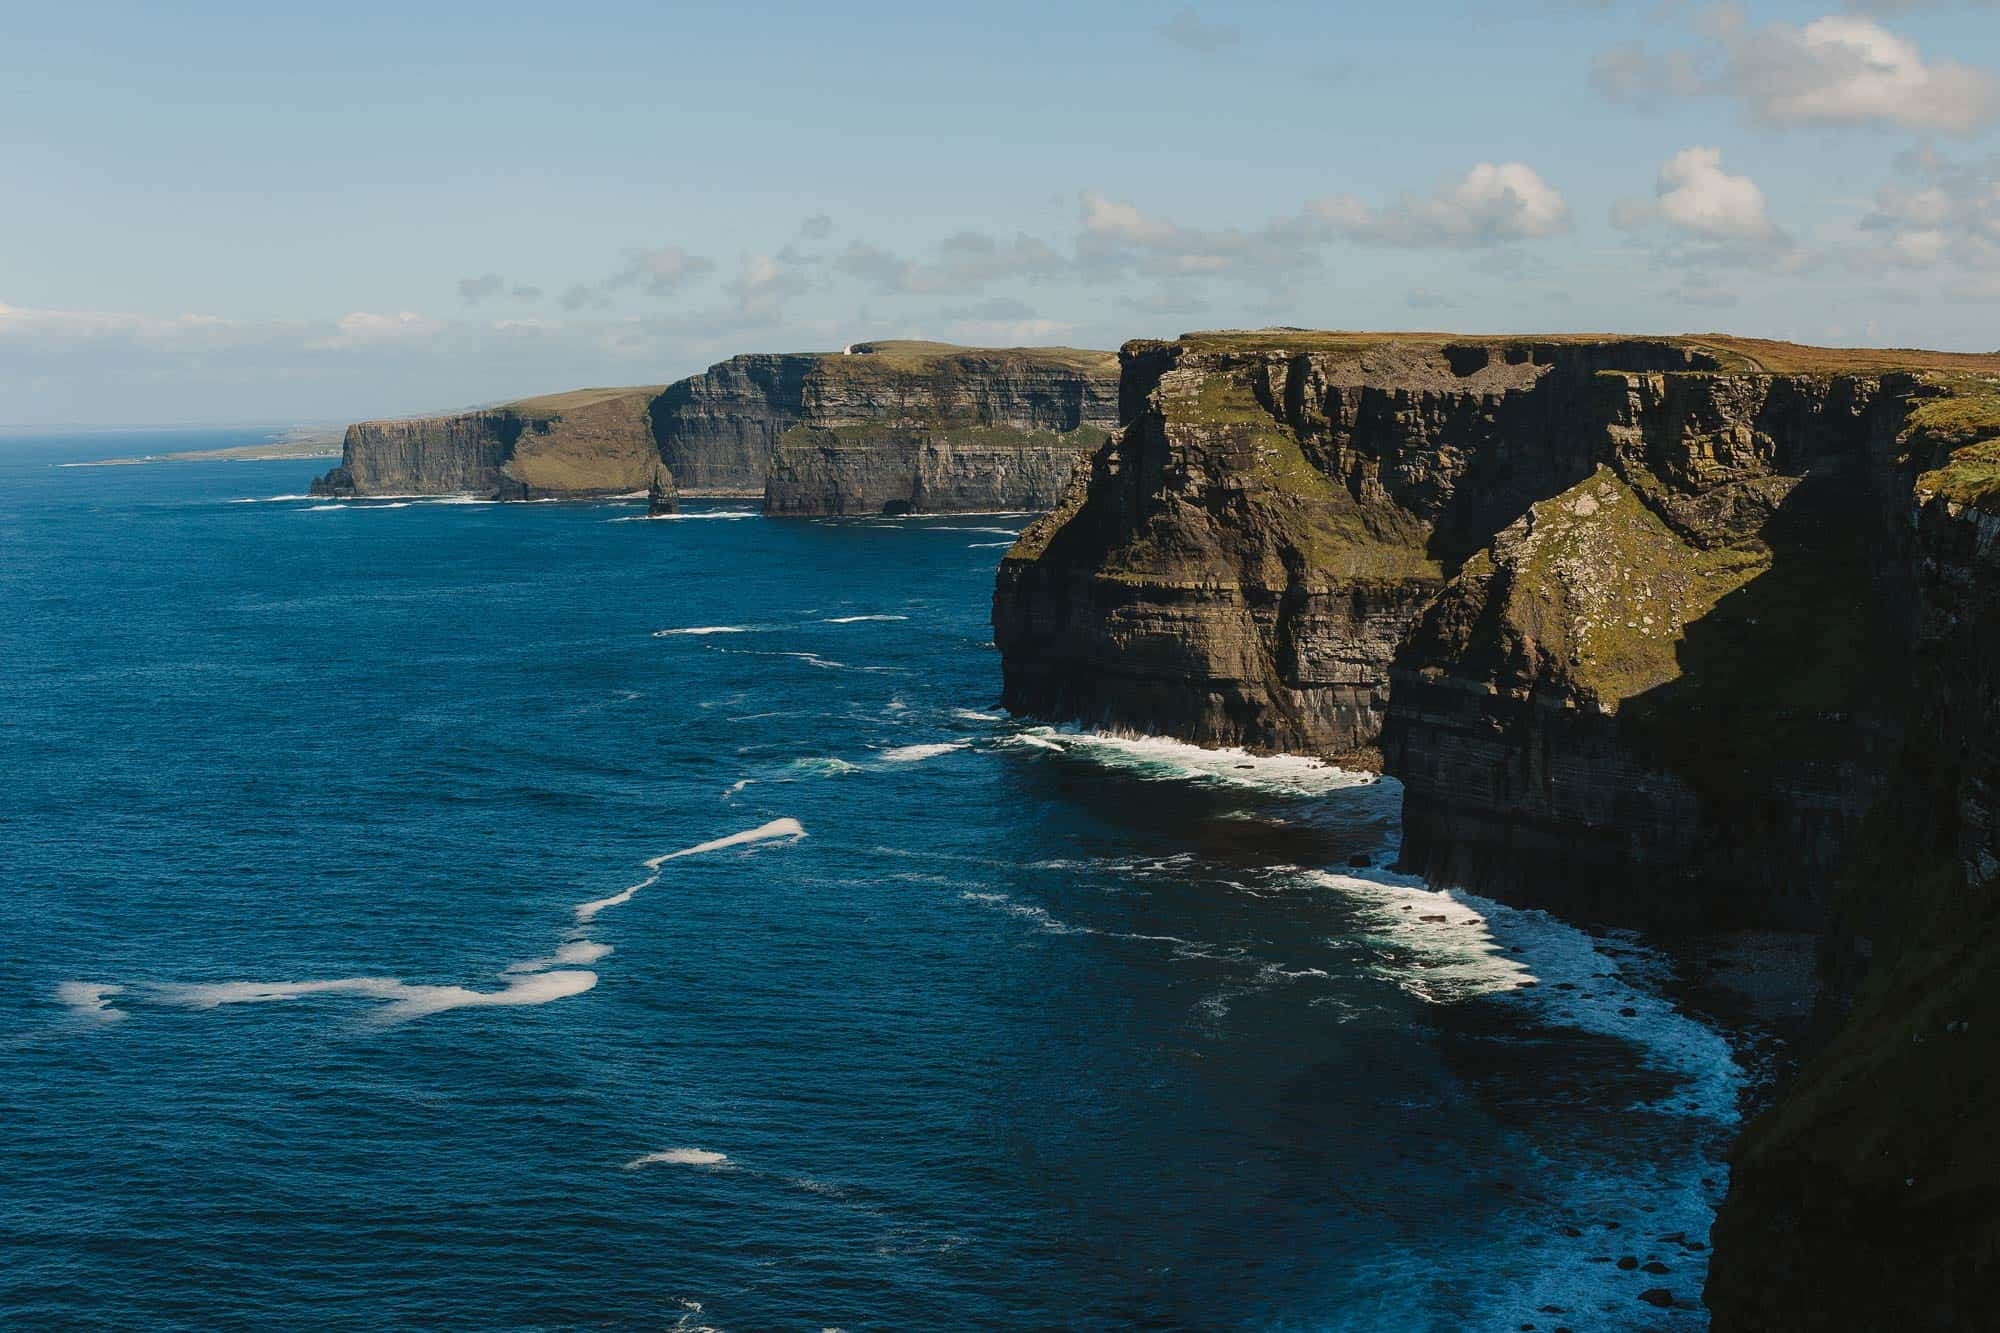 Cliffs of Moher Elopement Cliff Shot, for using as cover of elopement film of D & K